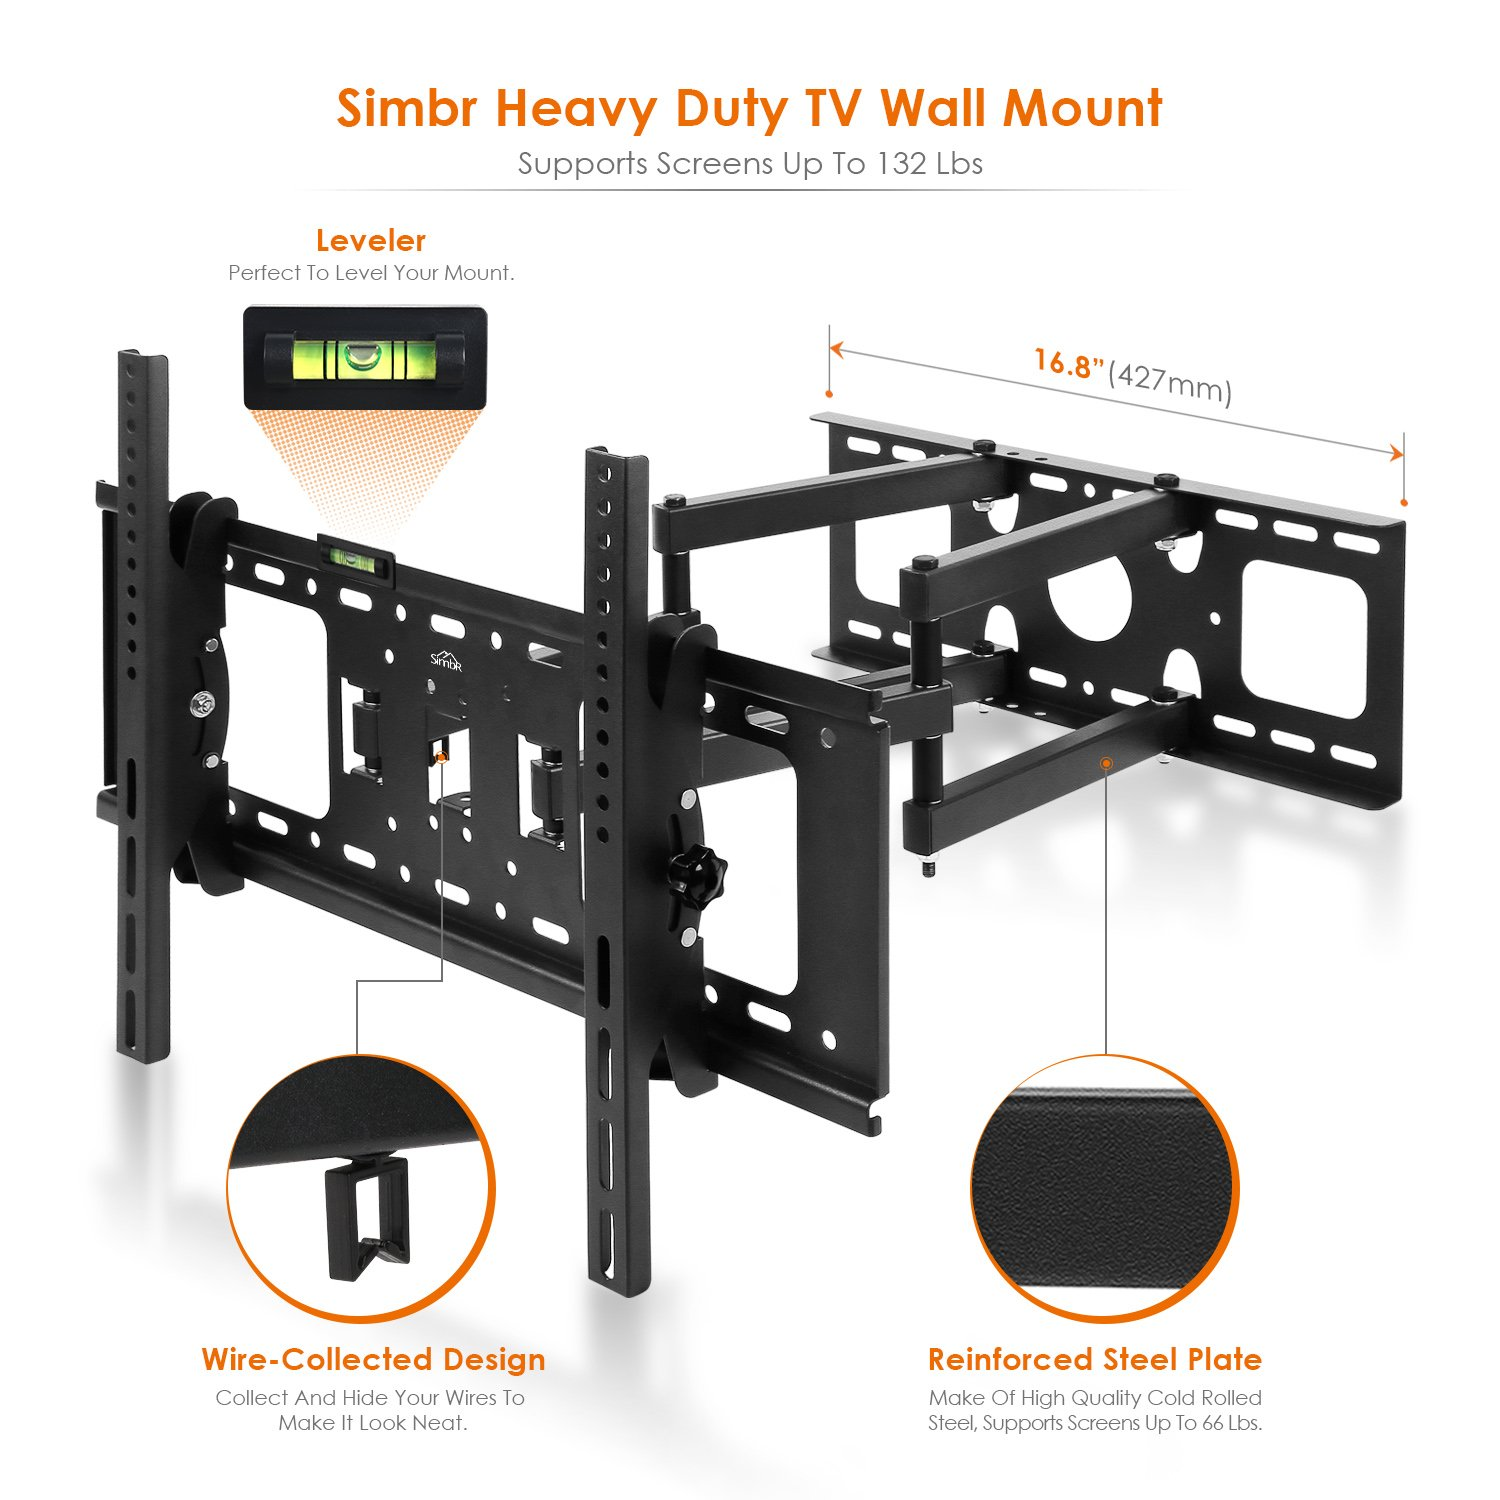 Fancy Wall Mount Tv Without Wires Composition - The Wire - magnox.info